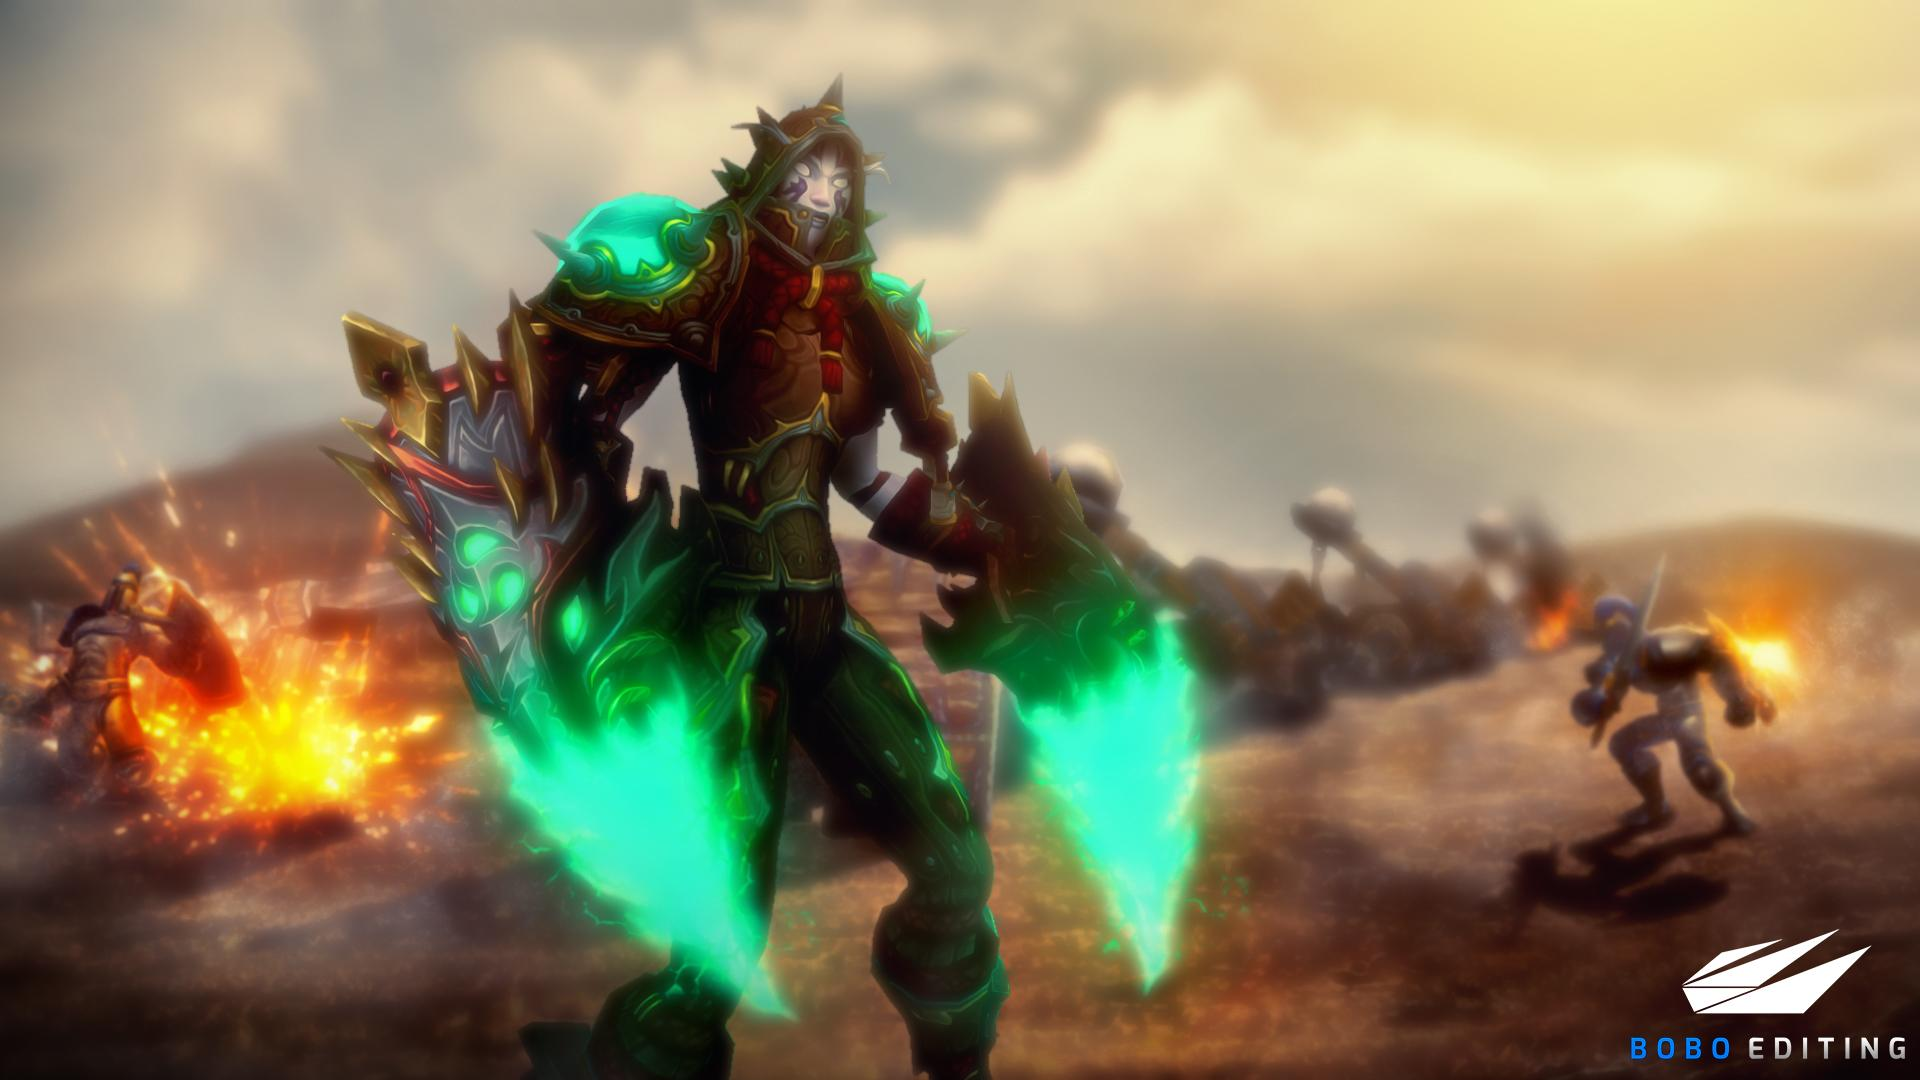 World Of Warcraft Wallpaper Battle For Azeroth Posted By